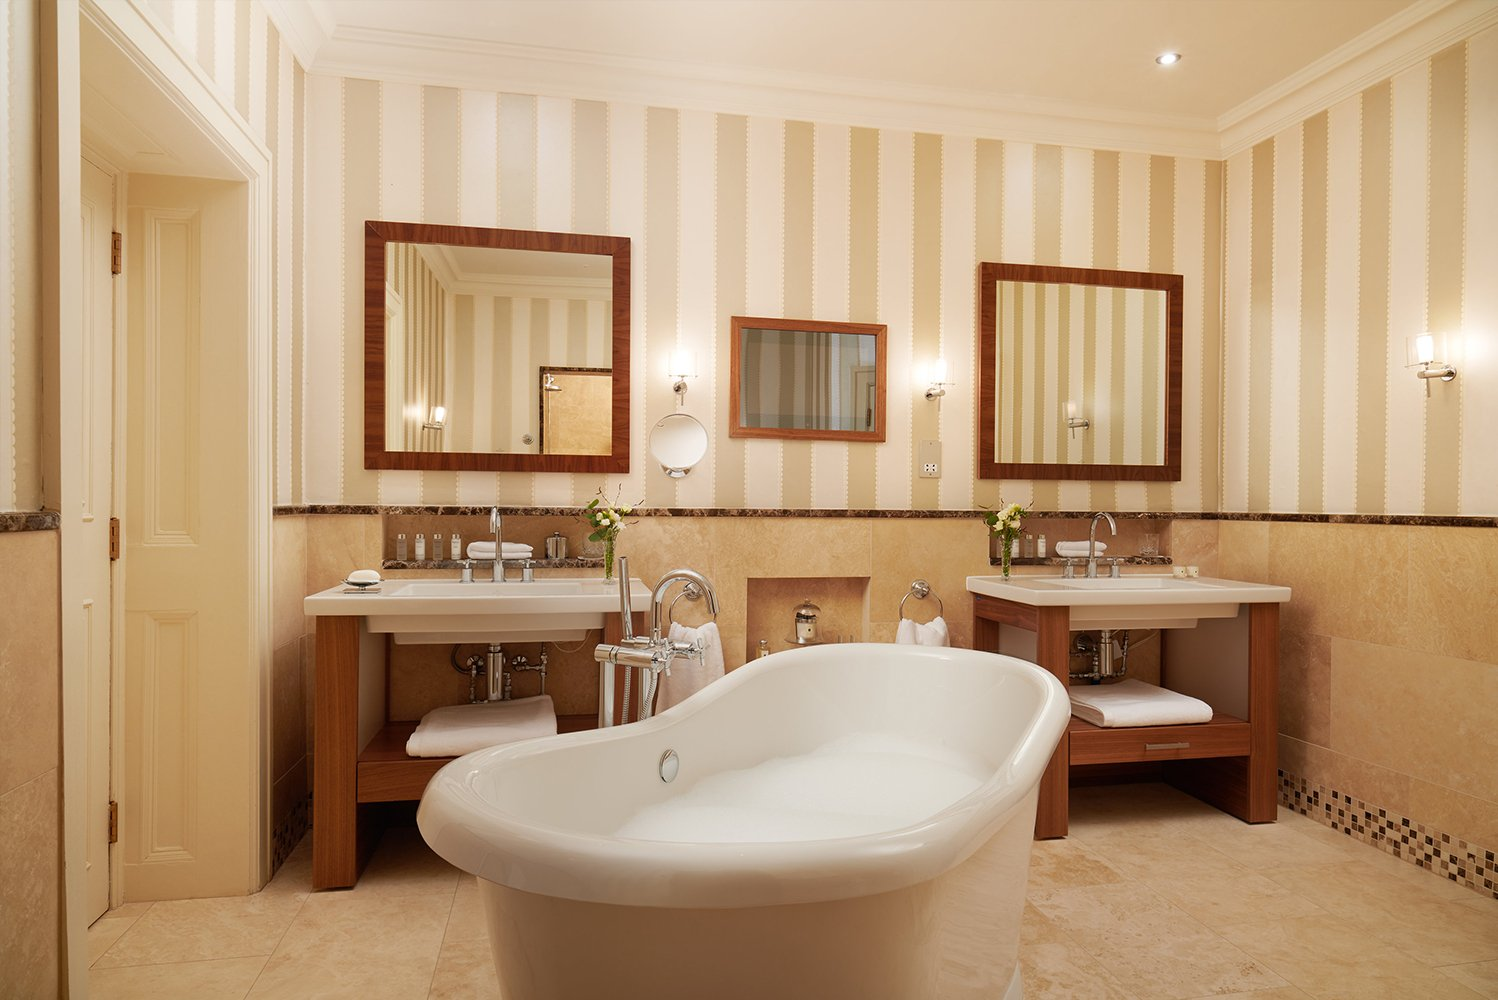 The property has 97 guestrooms, the Dromoland Castle Golf and Country Club, a spa and outdoor recreational facilities.